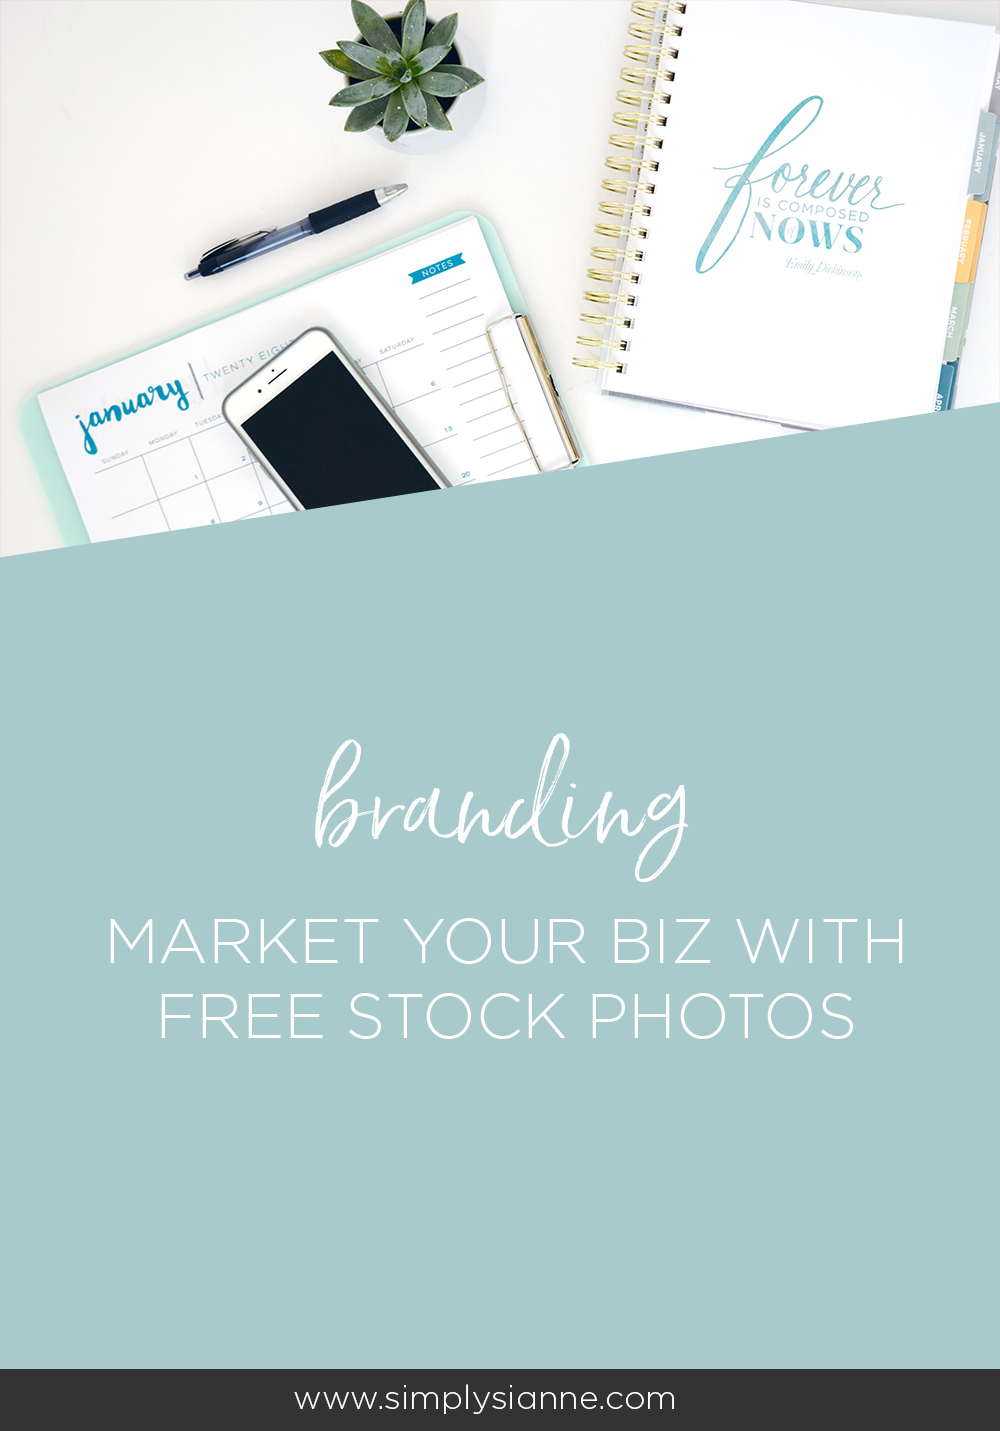 Market your creative business with free stock photos! | Free Stock Photos, Free Flatlay Photos, Lay flat photos, creative entrepreneur, branding, social media images